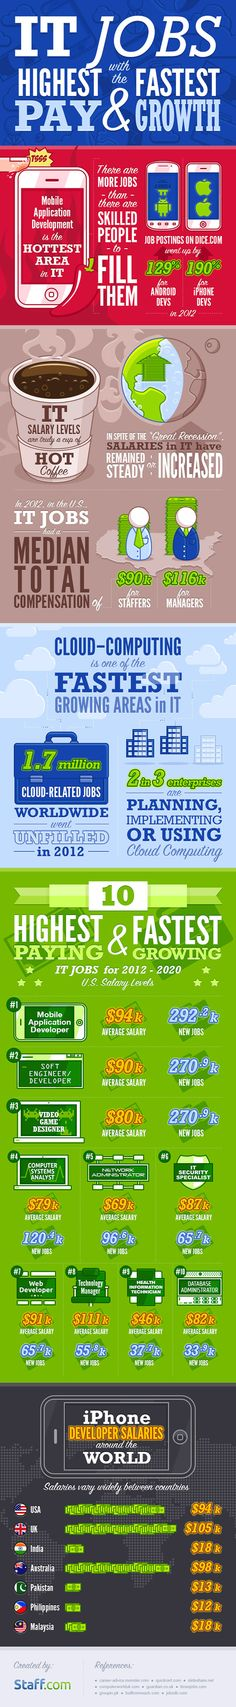 Highest paid and fastest growing IT jobs #infographic